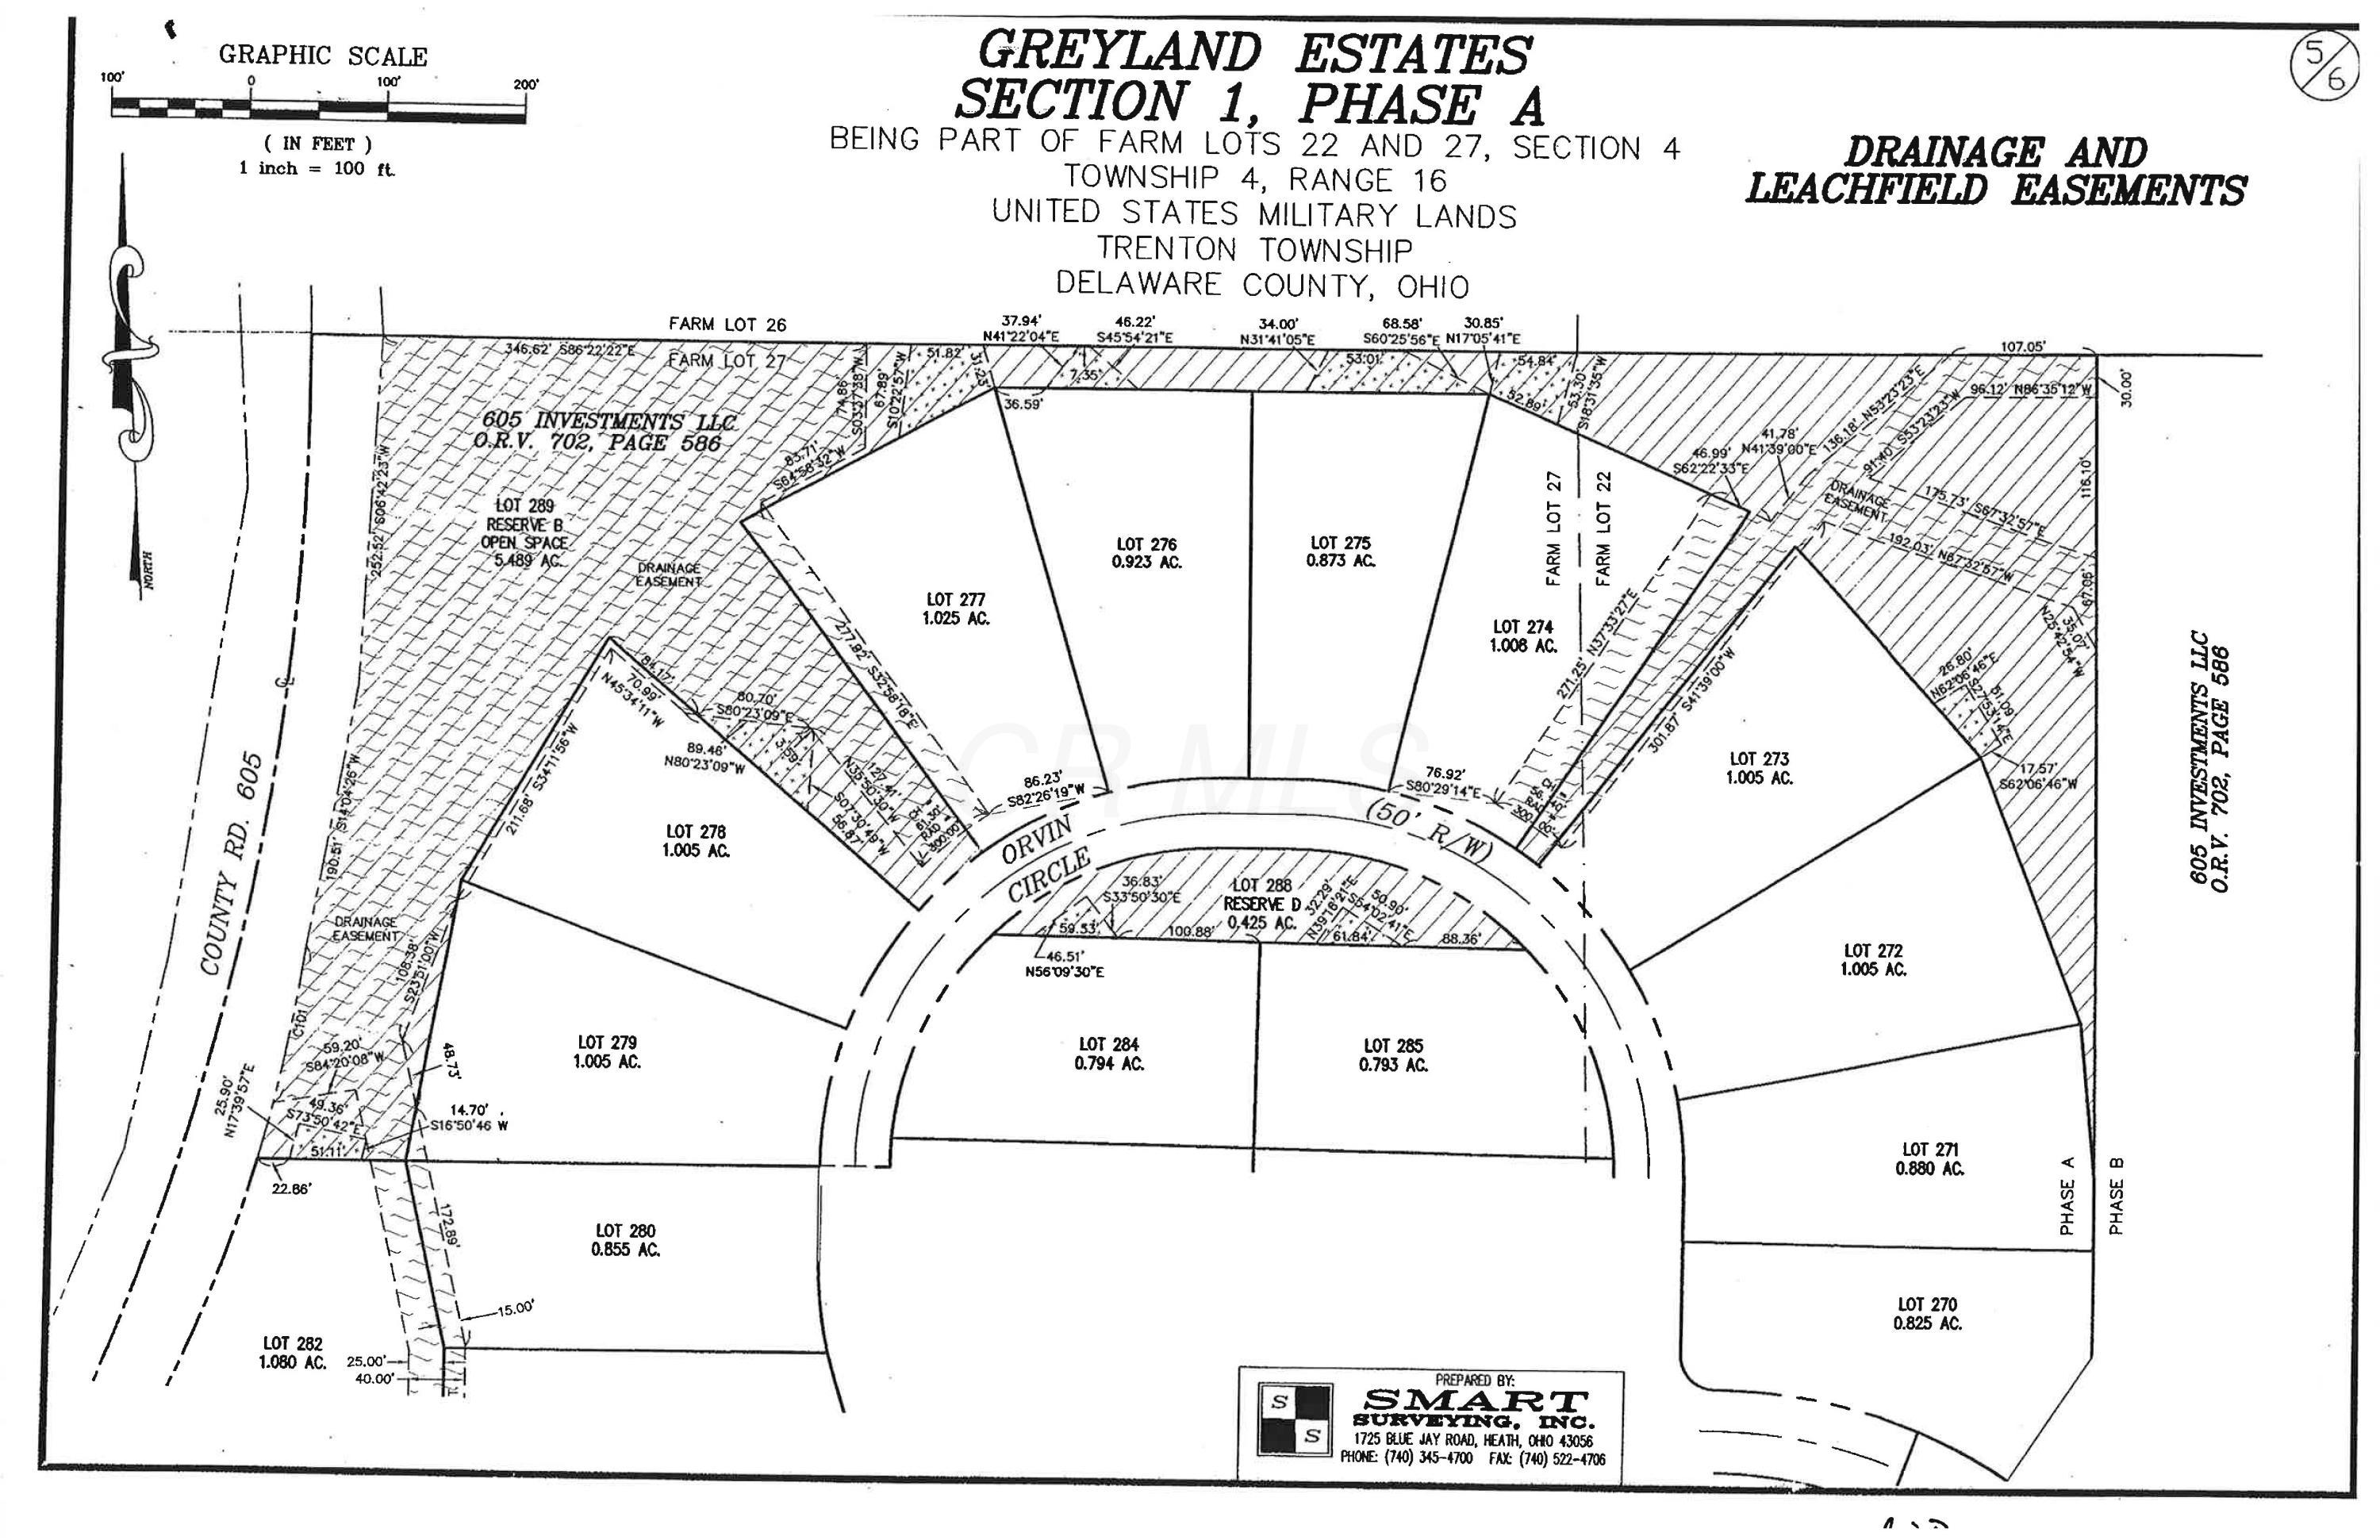 Greyland Estates Survey